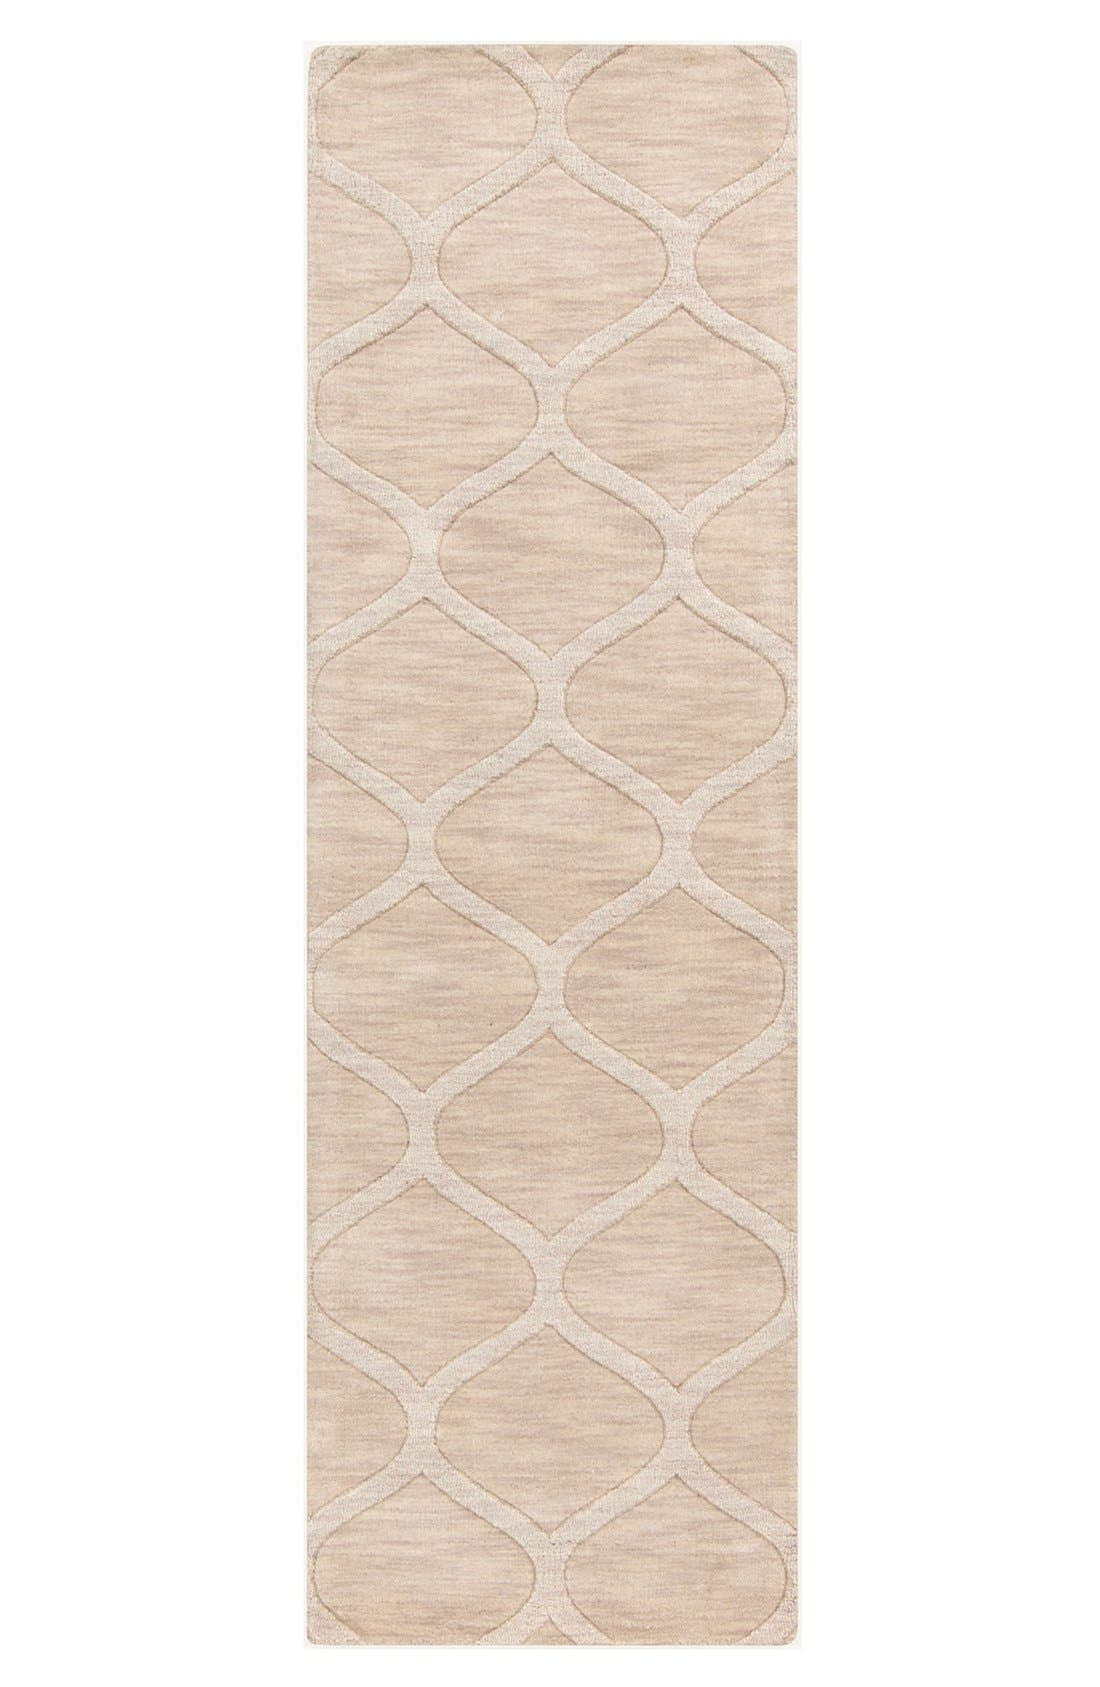 'Mystique' Hand Loomed Wool Rug,                             Alternate thumbnail 4, color,                             IVORY